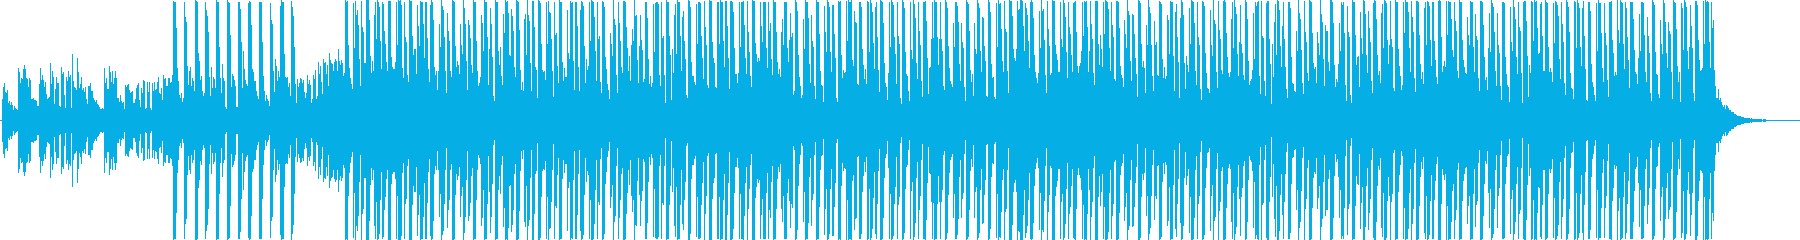 A modern BGM with an impressive vocal chop's reproduced waveform